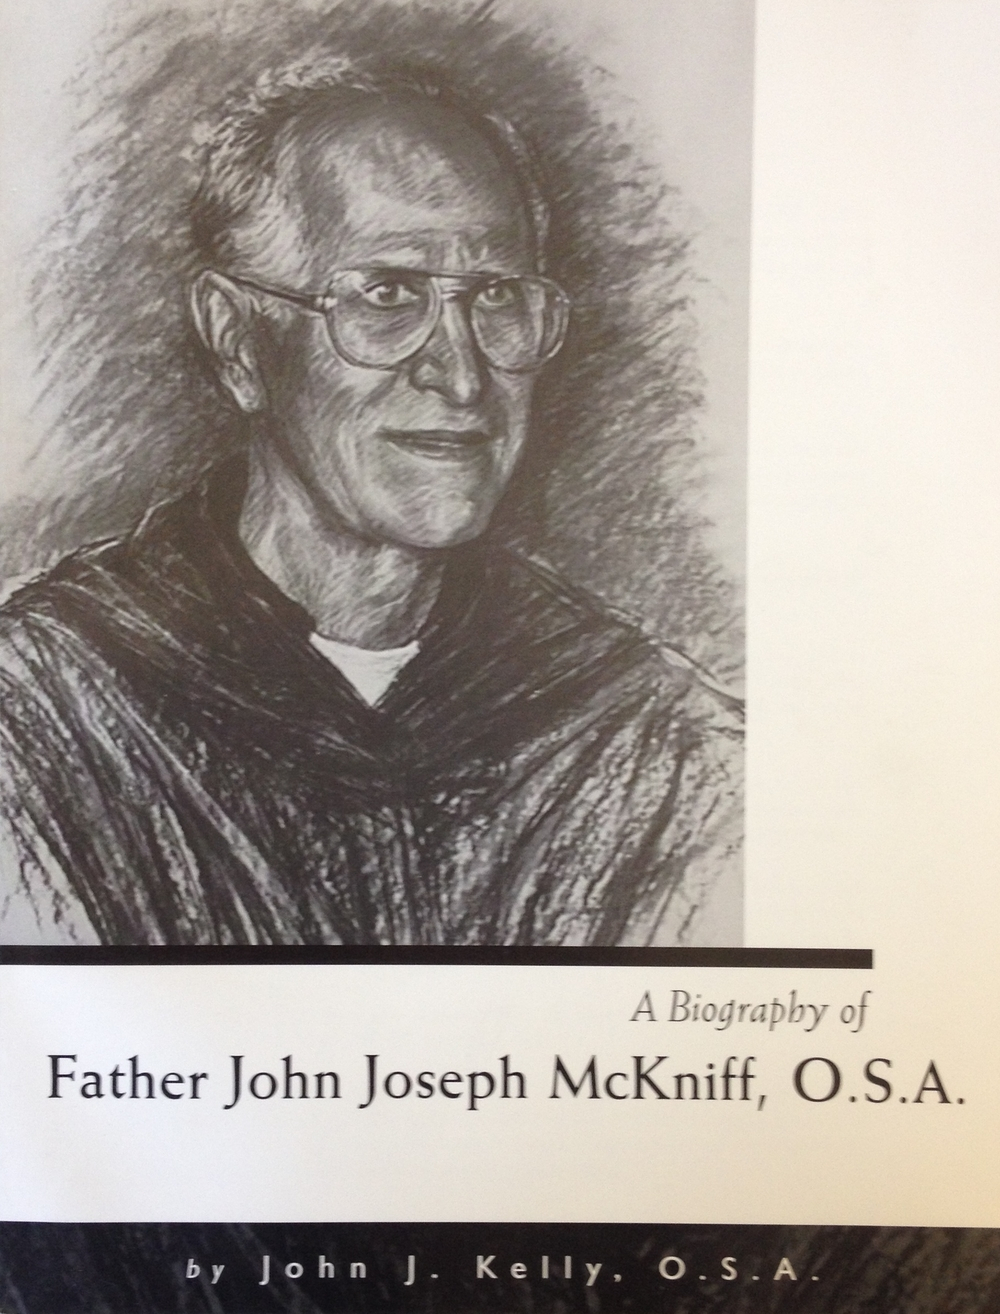 "A Biography of Father John Joseph McKniff, O.S.A. by John J. Kelly, O.S.A. is available.  To obtain a copy, send check or money order for $10 (U. S. Funds only - Payable to ""Augustinian Order"") to:      Secretary of the Province      Province of Our Mother of Good Counsel      5401 S. Cornell Ave.      Chicago, IL  60615-5664 (Shipped to U. S. addresses only.)"